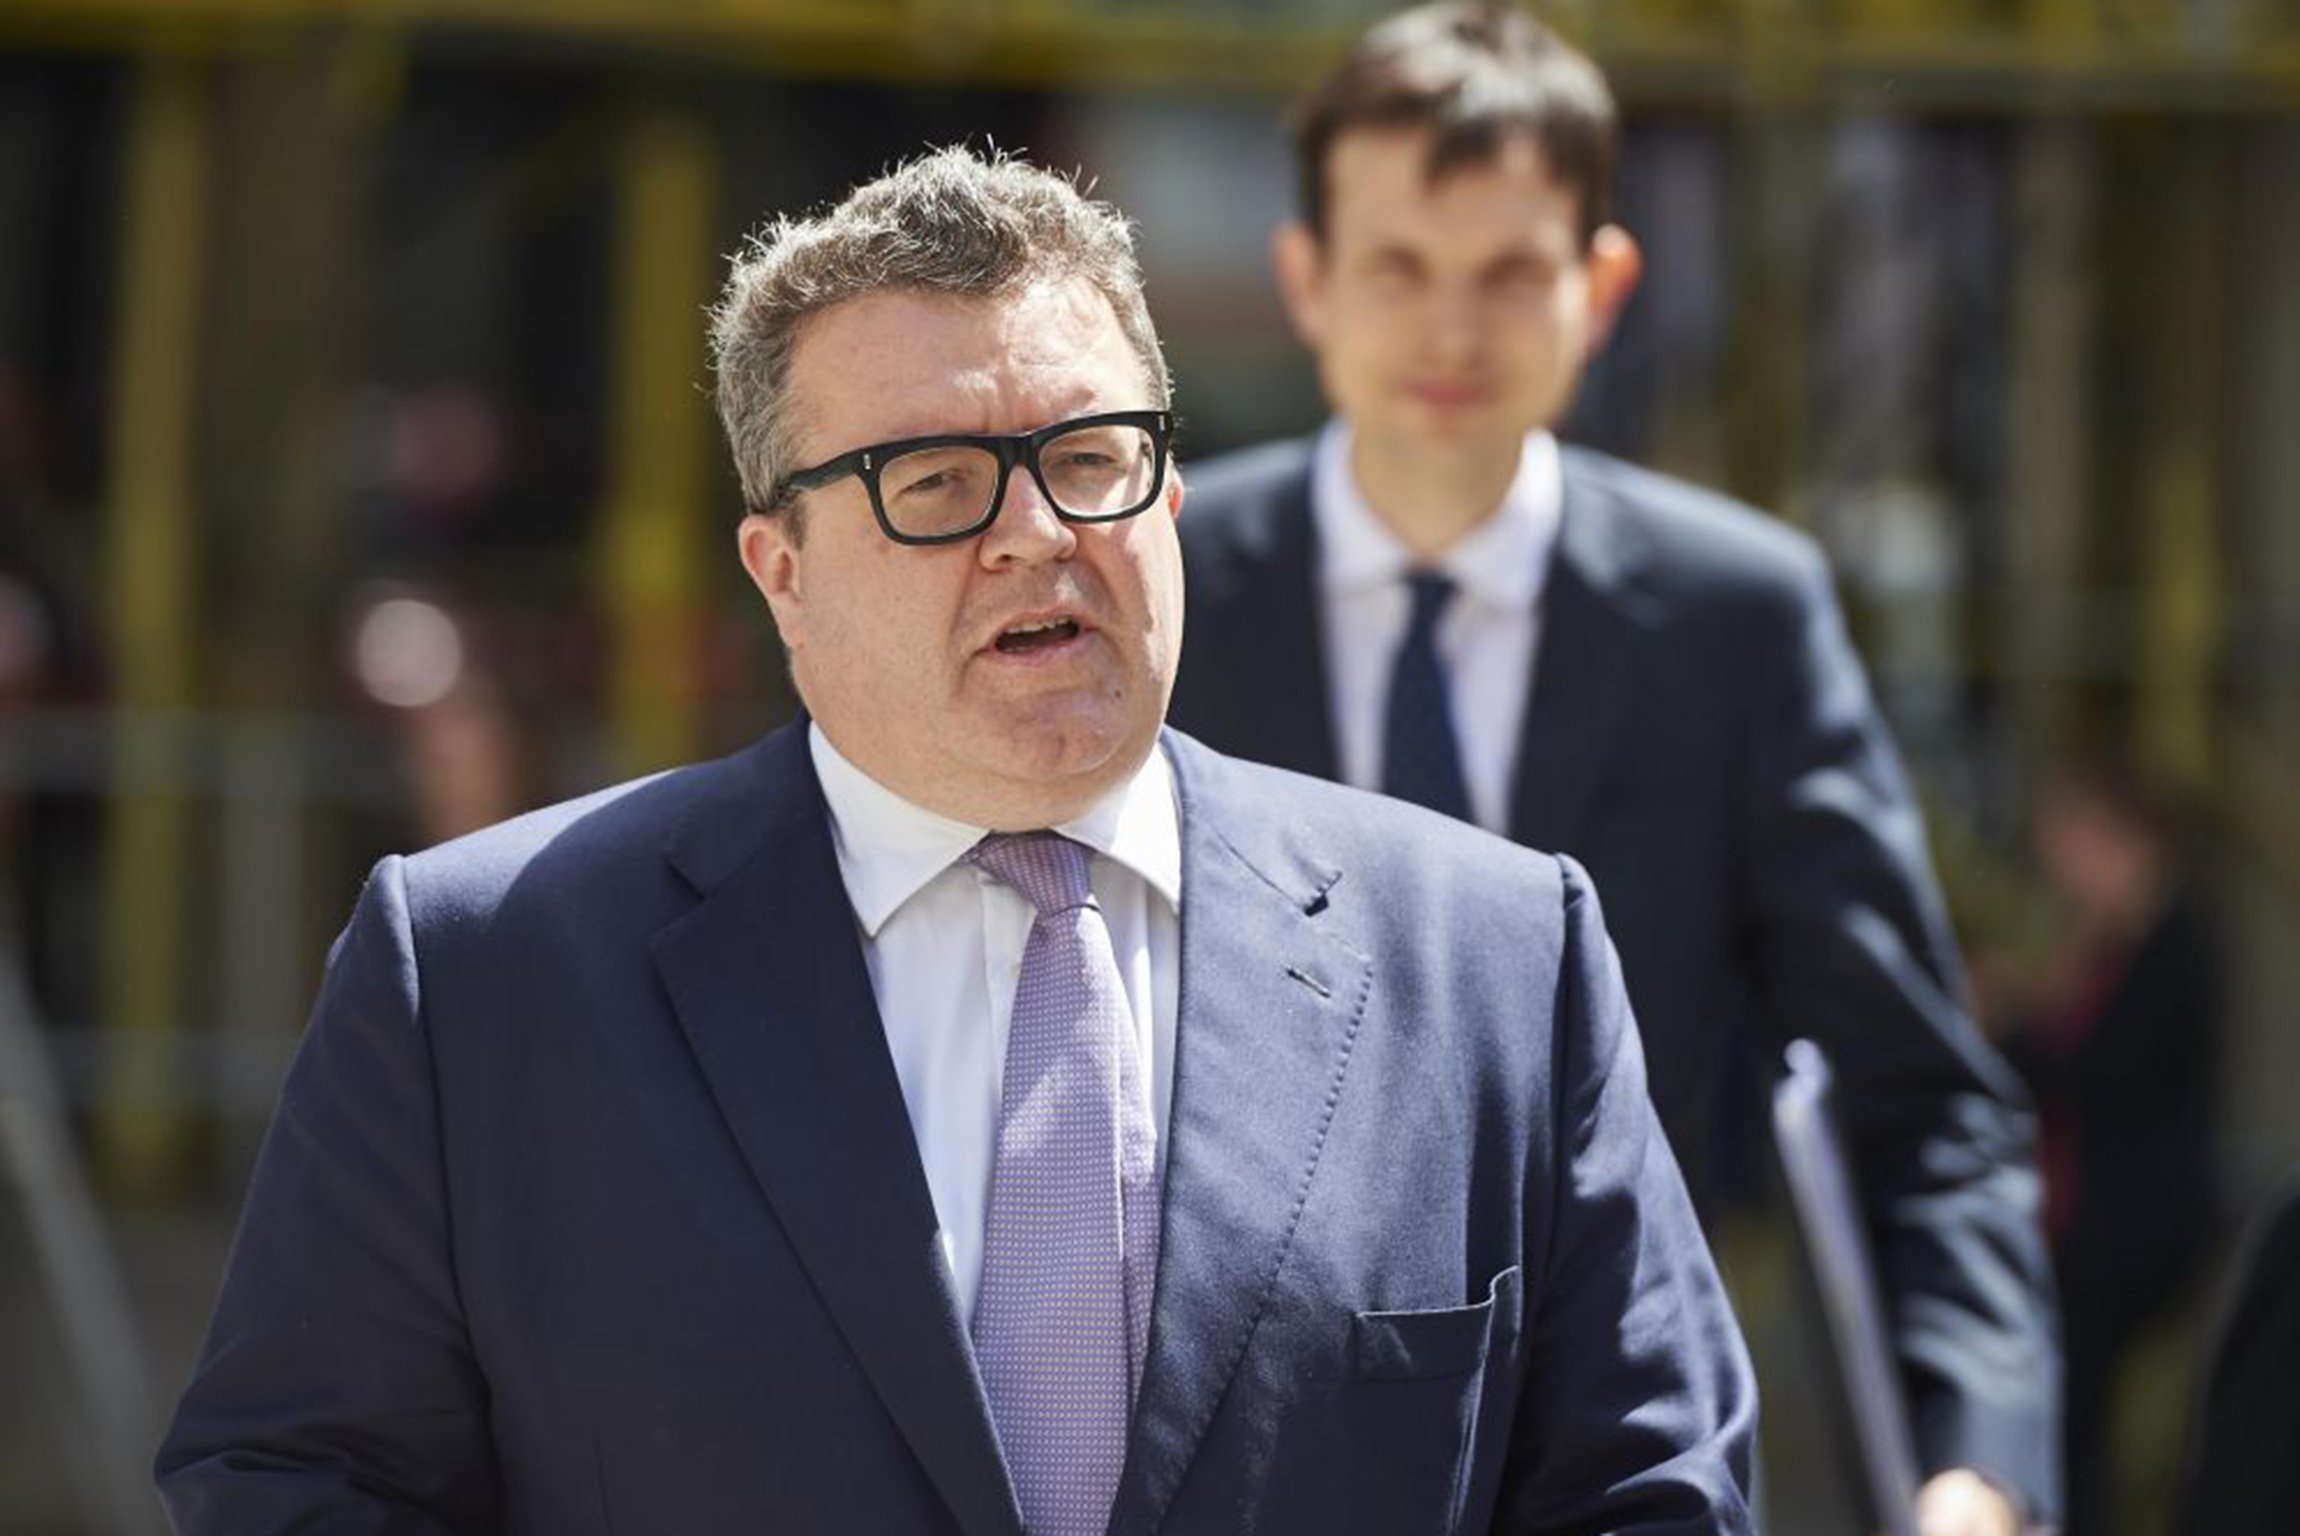 Tom Watson: We've got an uphill struggle ahead